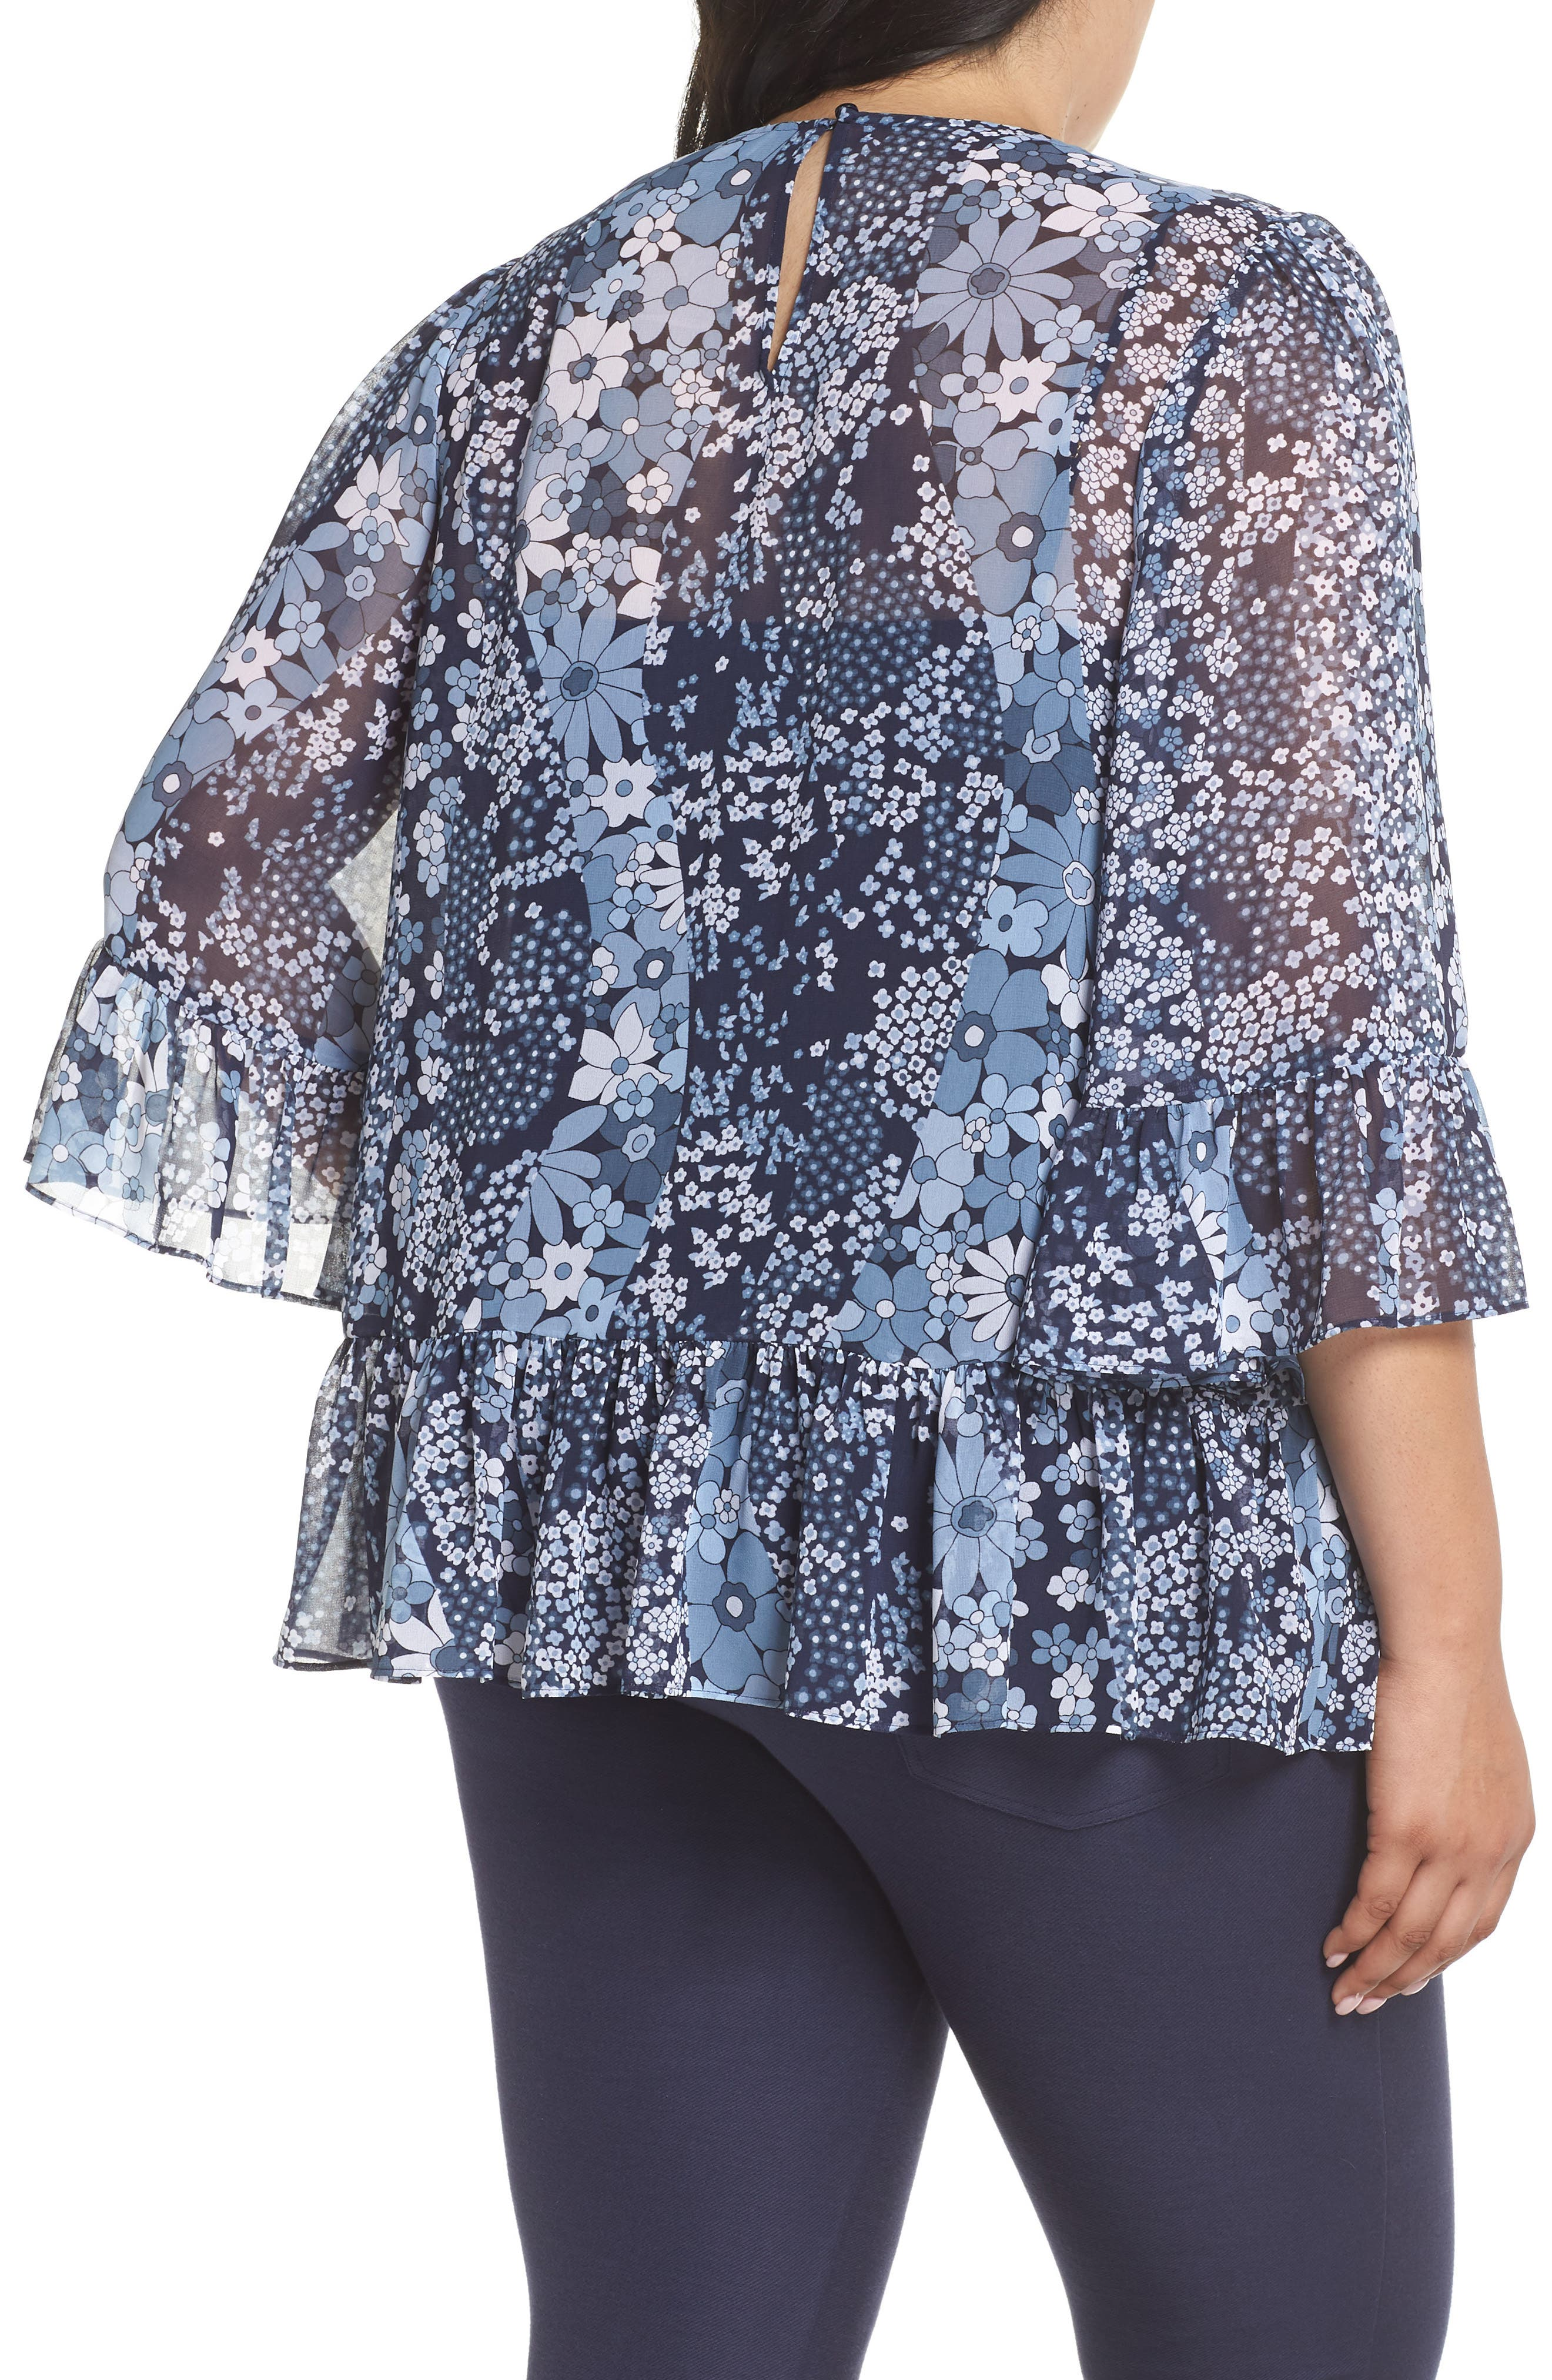 Patchwork Flowers Top,                             Alternate thumbnail 2, color,                             True Navy/ Light Chambray